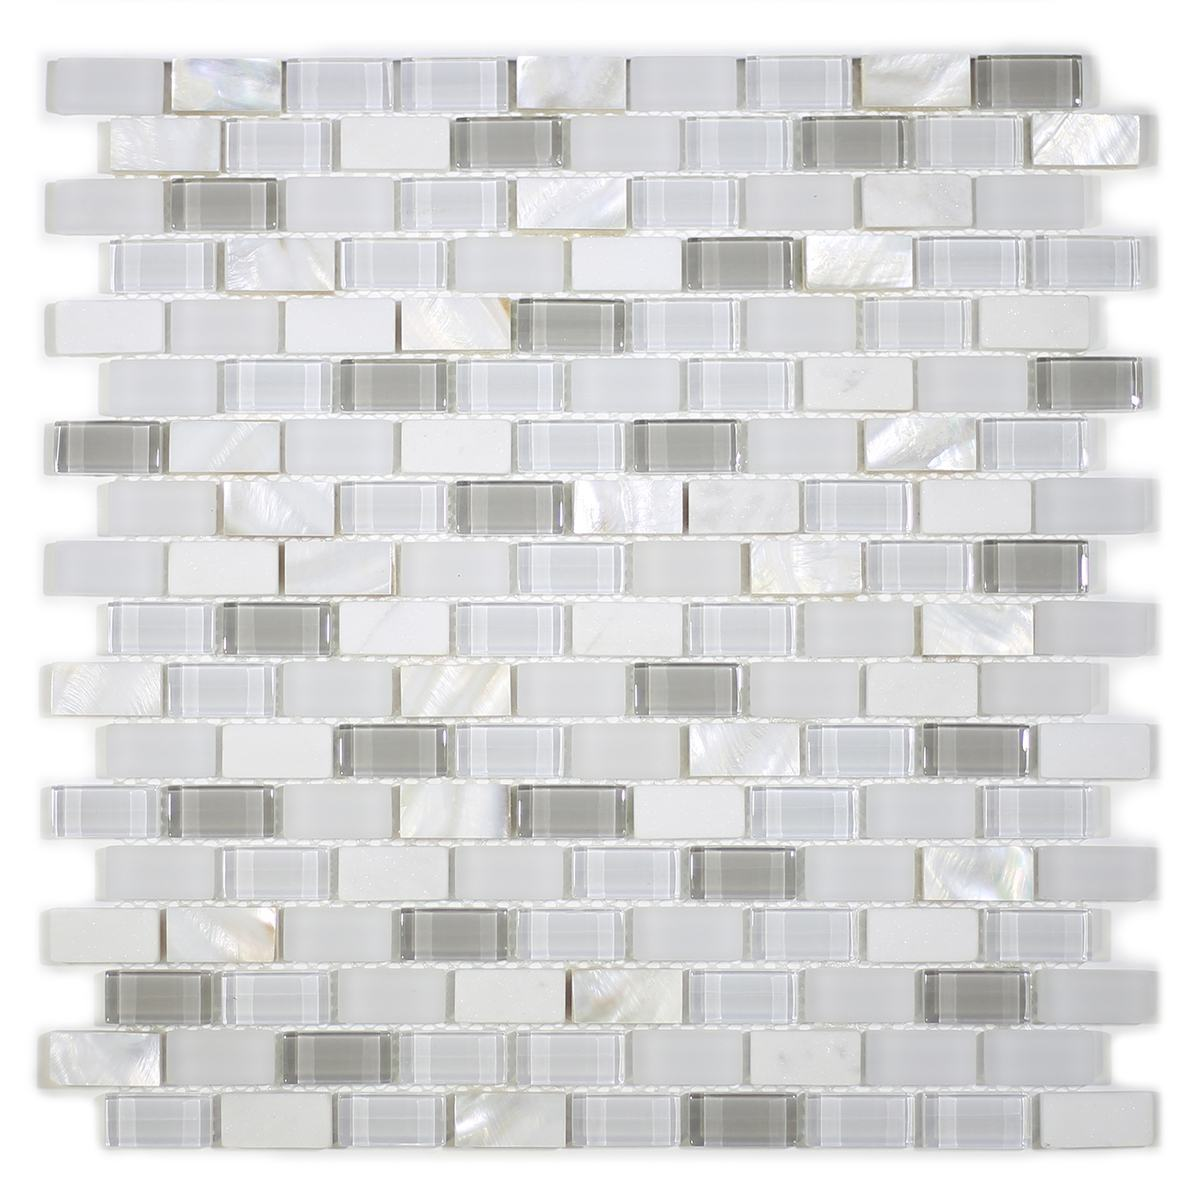 MA68-LB  BRICK SHELL, MARBLE AND GLASS MOSAIC